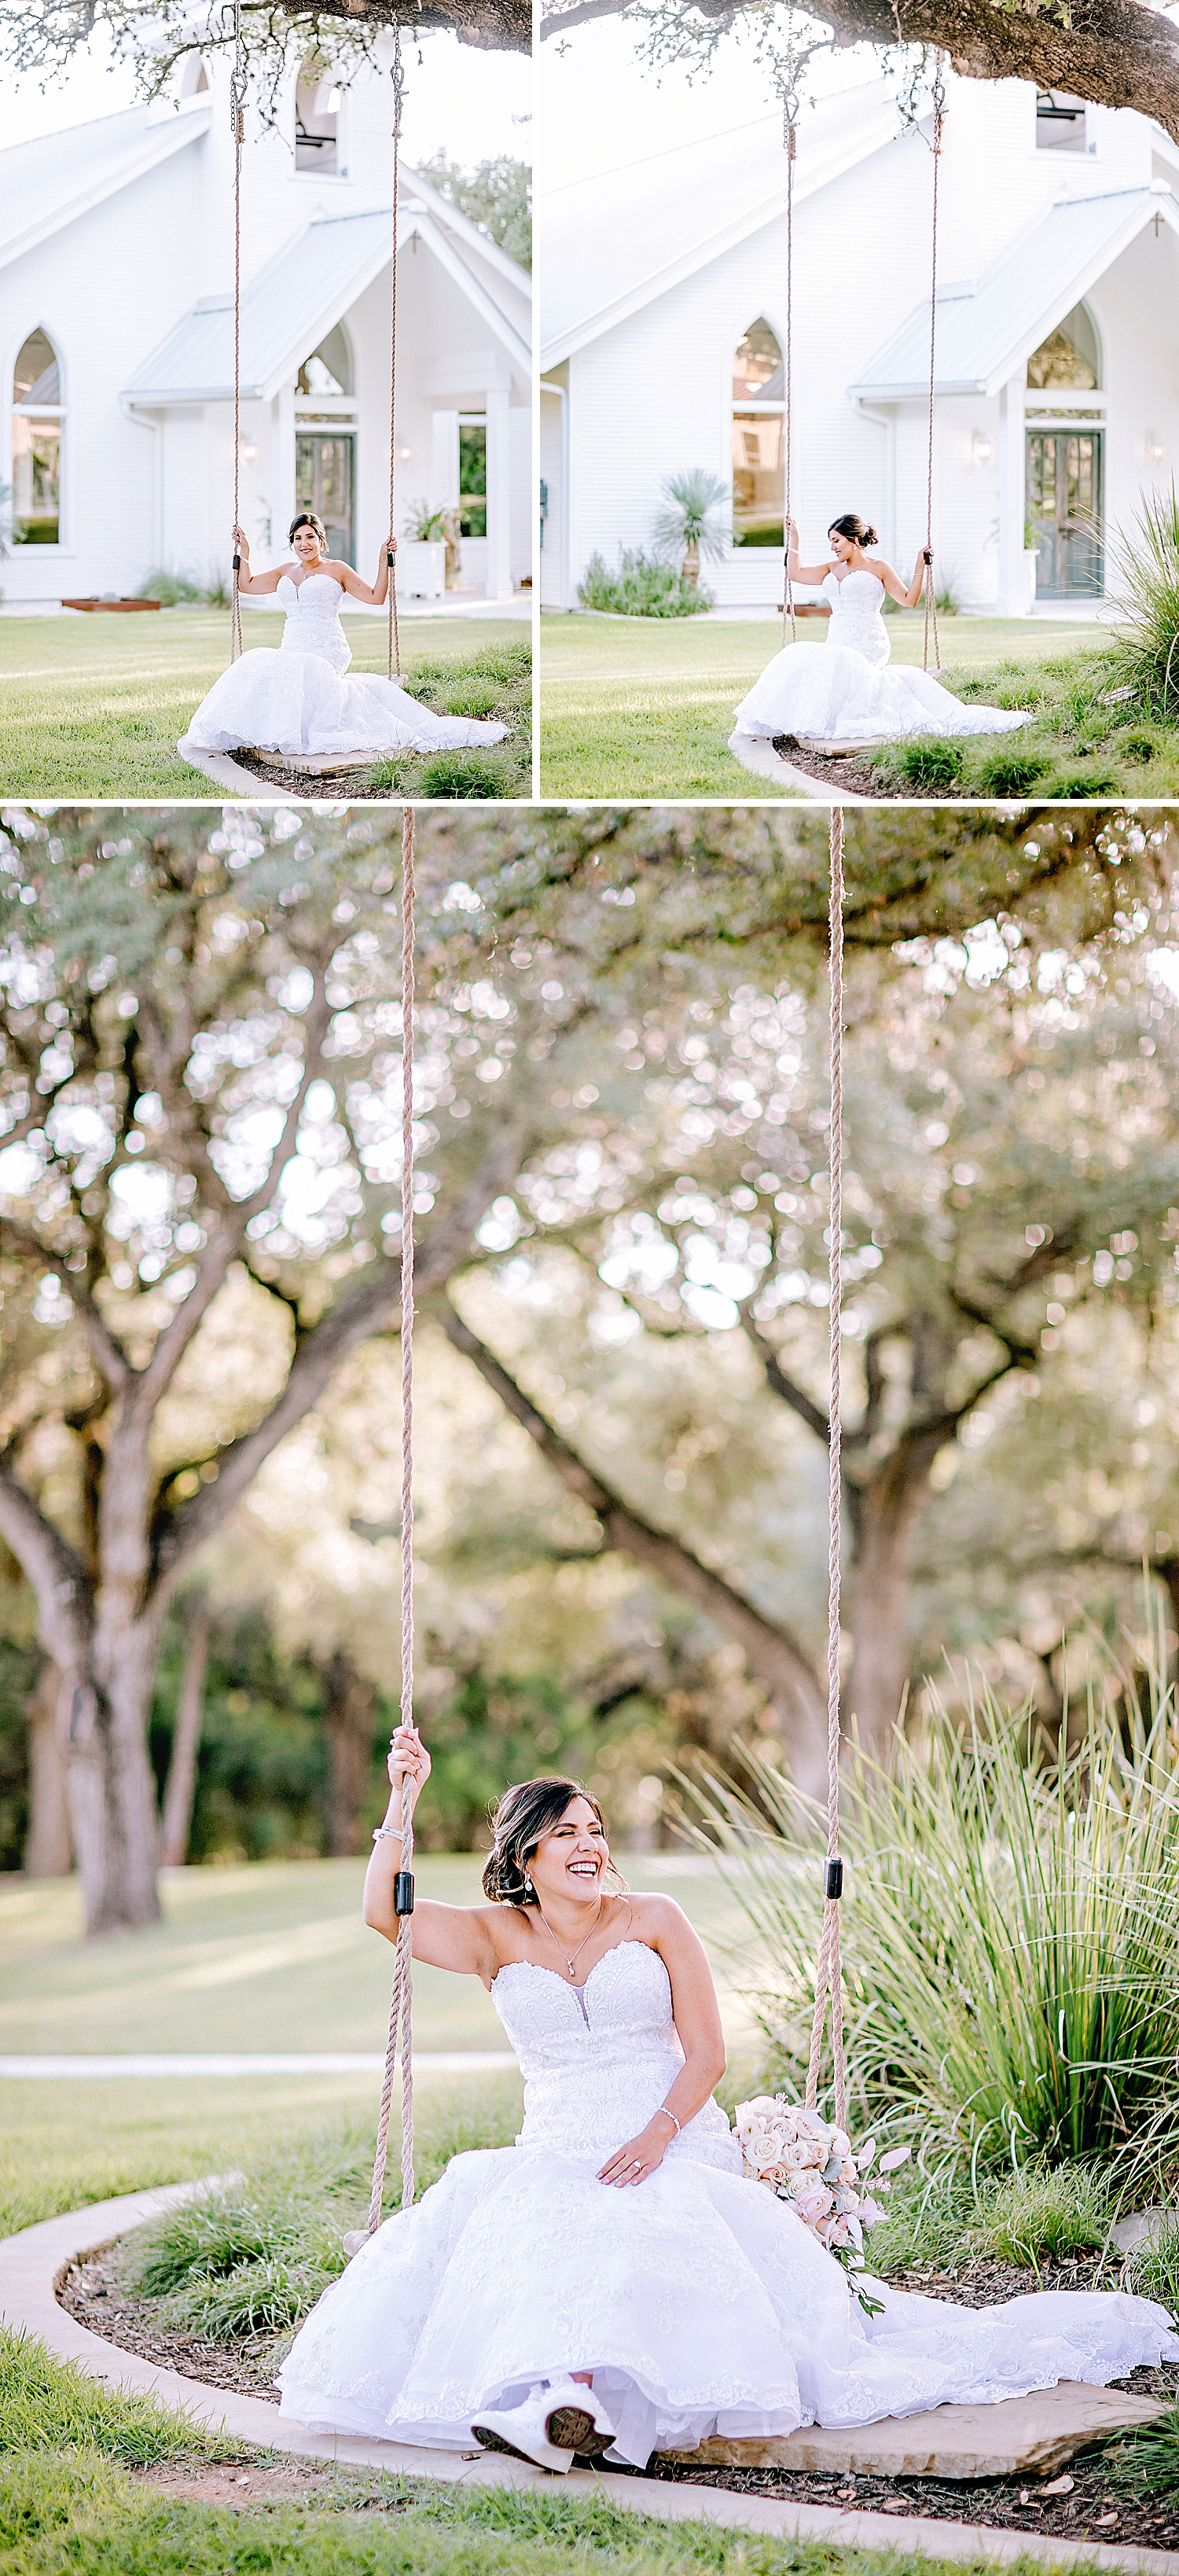 Carly-Barton-Photography-Bridal-Photos-Chadelier-of-Gruene-New-Braunfels-Wedding-Photographer_0010.jpg